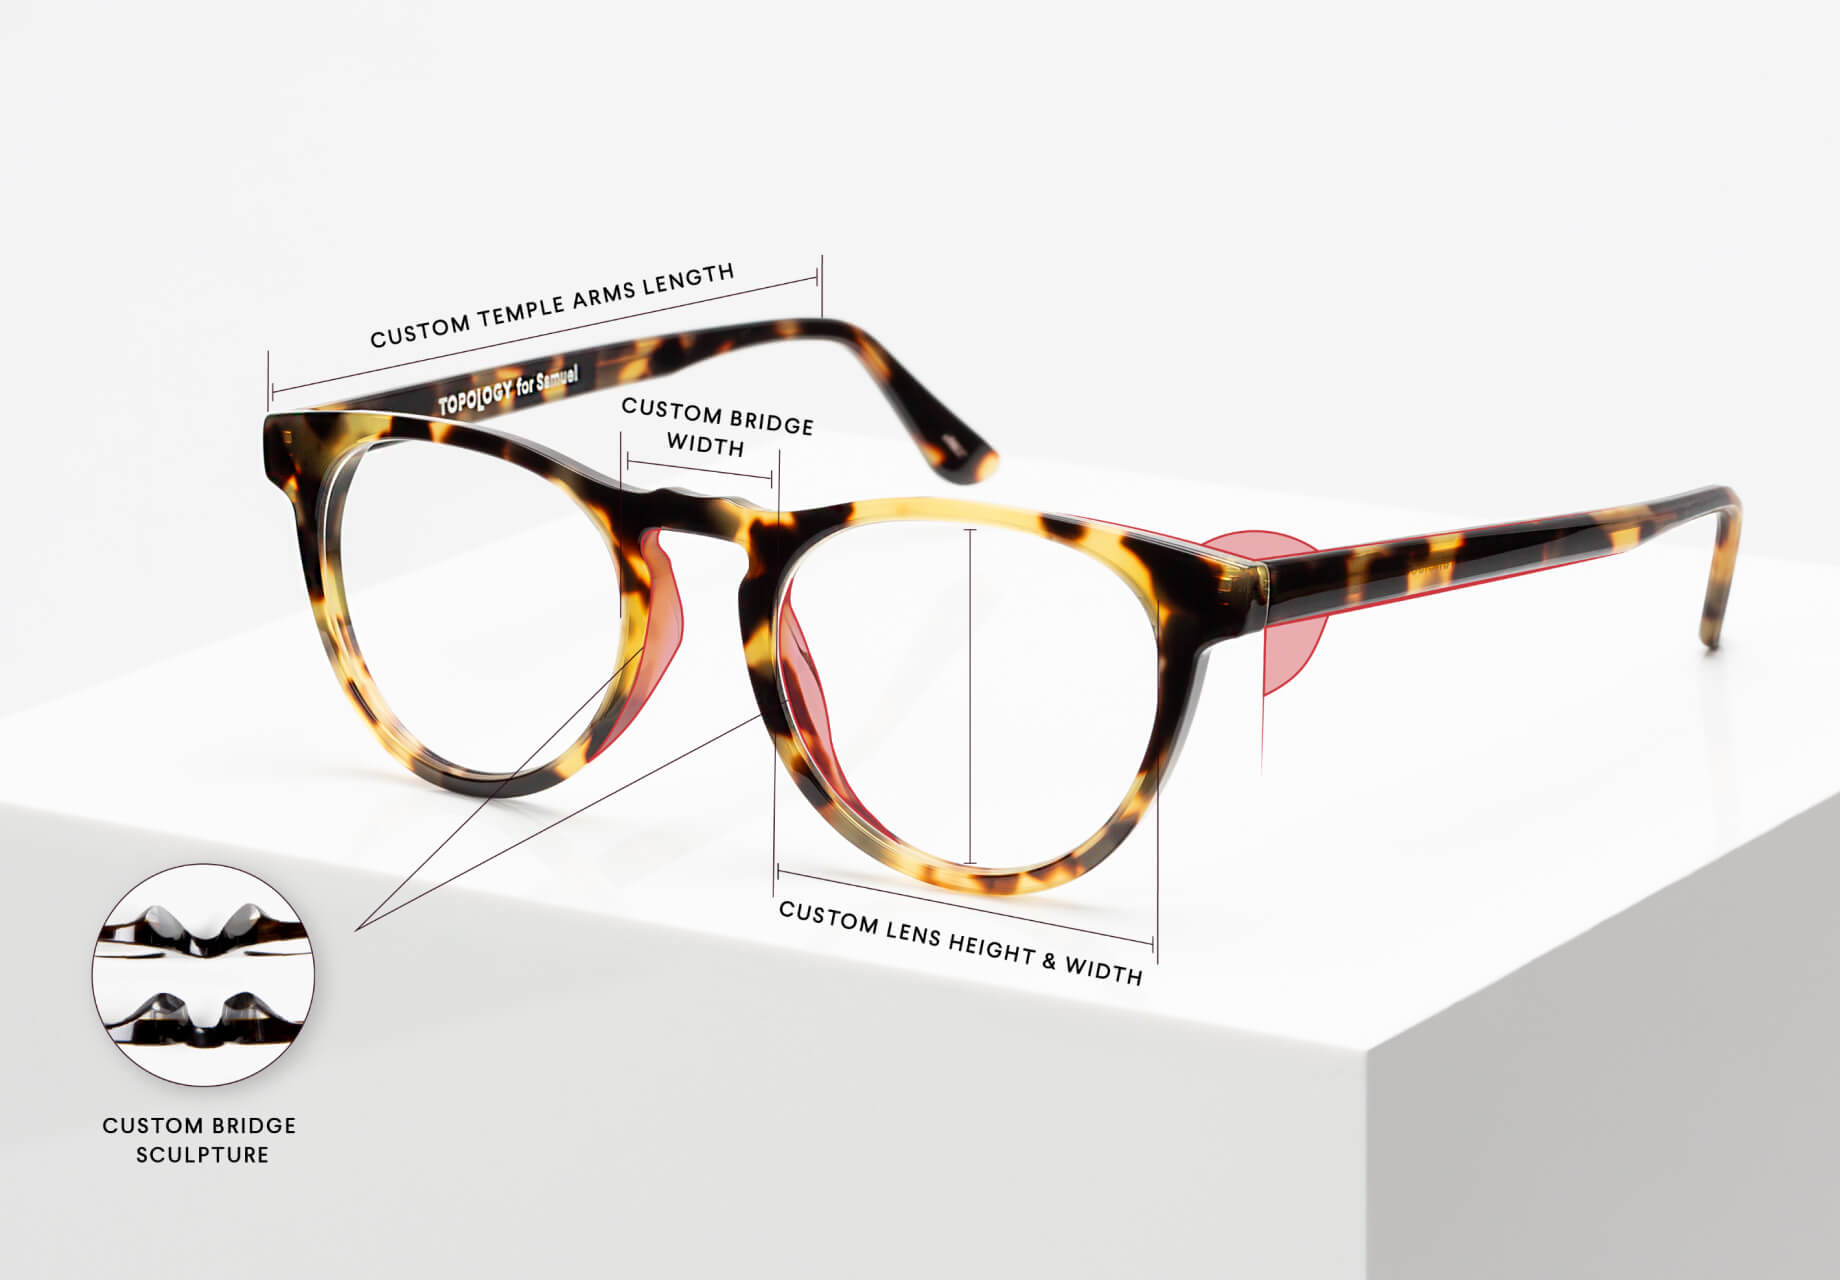 fea9970098f Topology glasses are made for your eyes only. Our custom-fit eyewear is  made from scratch for one person at a time